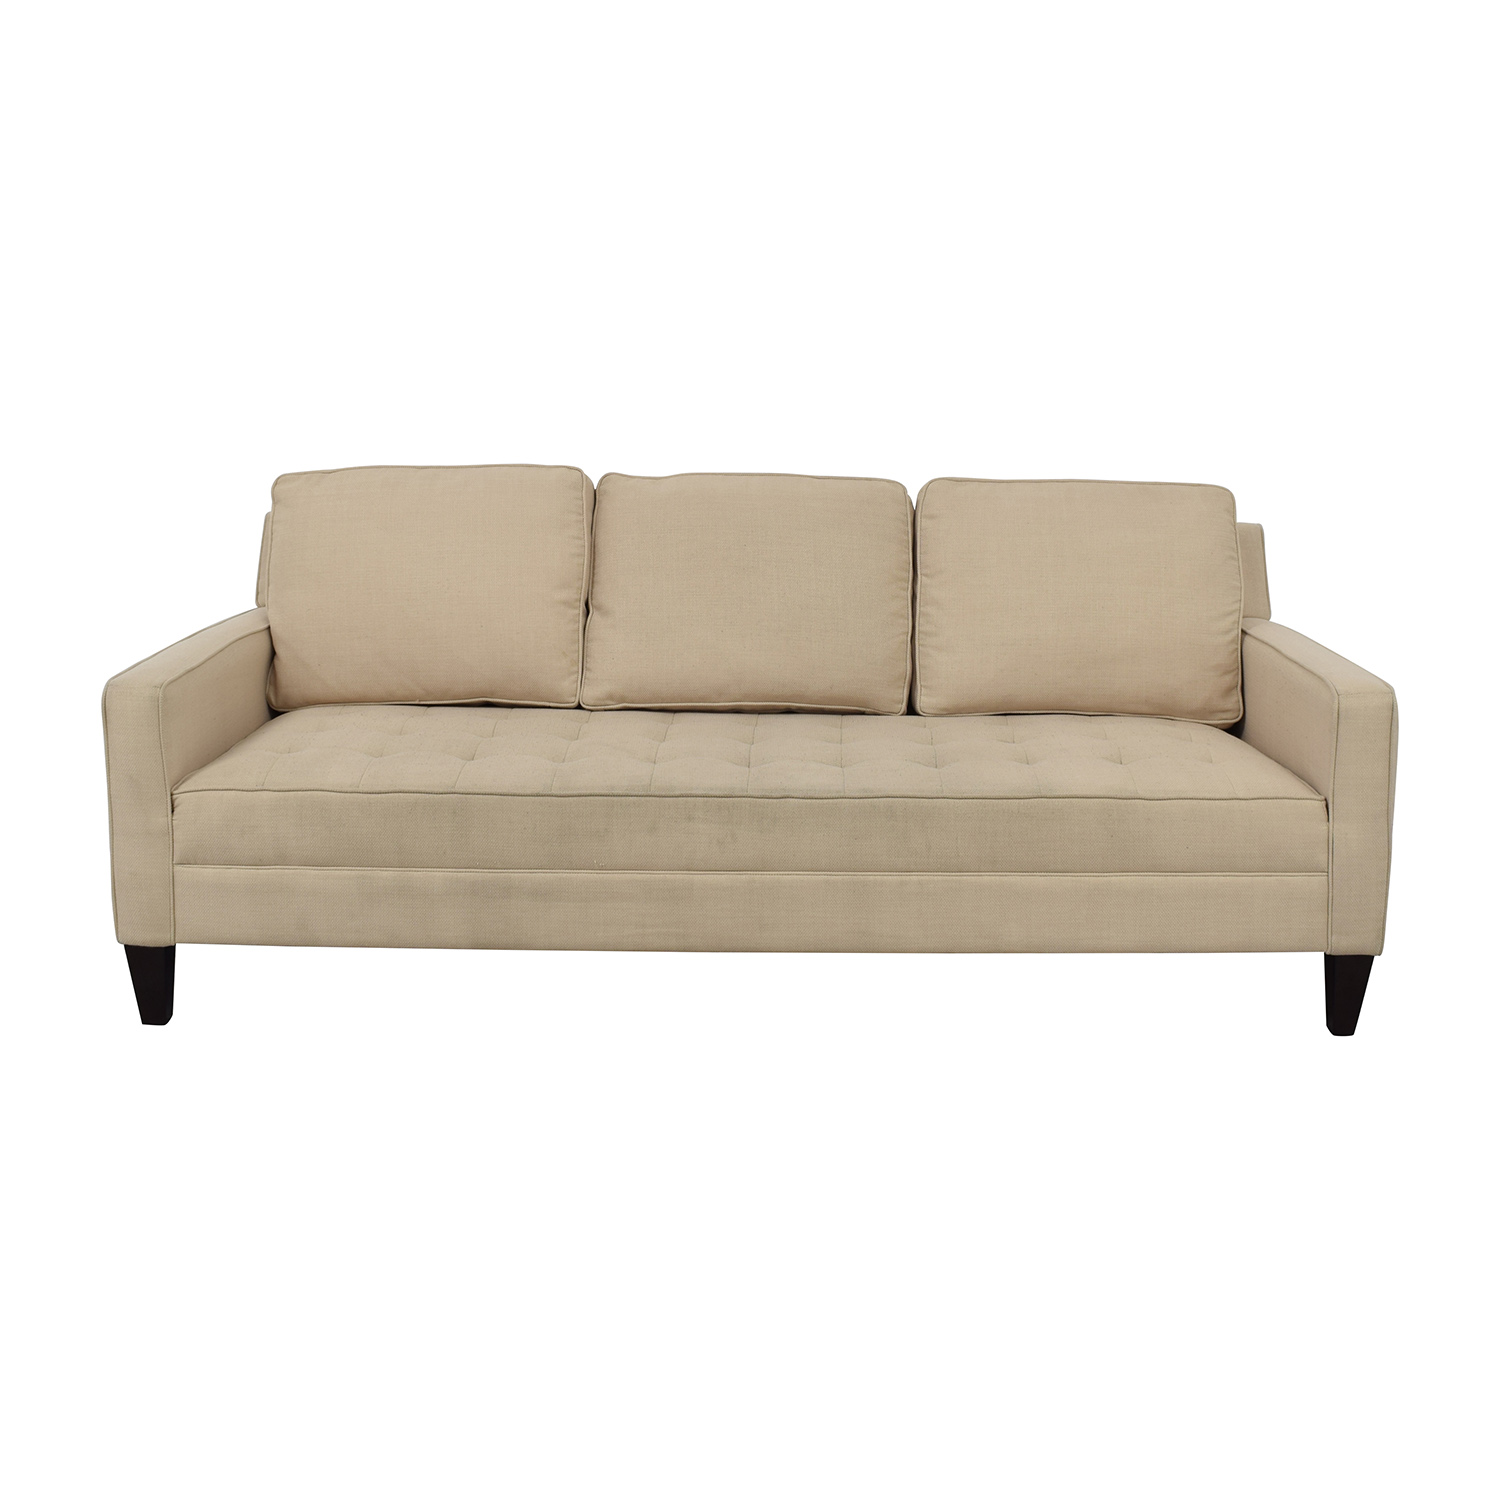 buy Off White Tufted Single Cushion Sofa Classic Sofas